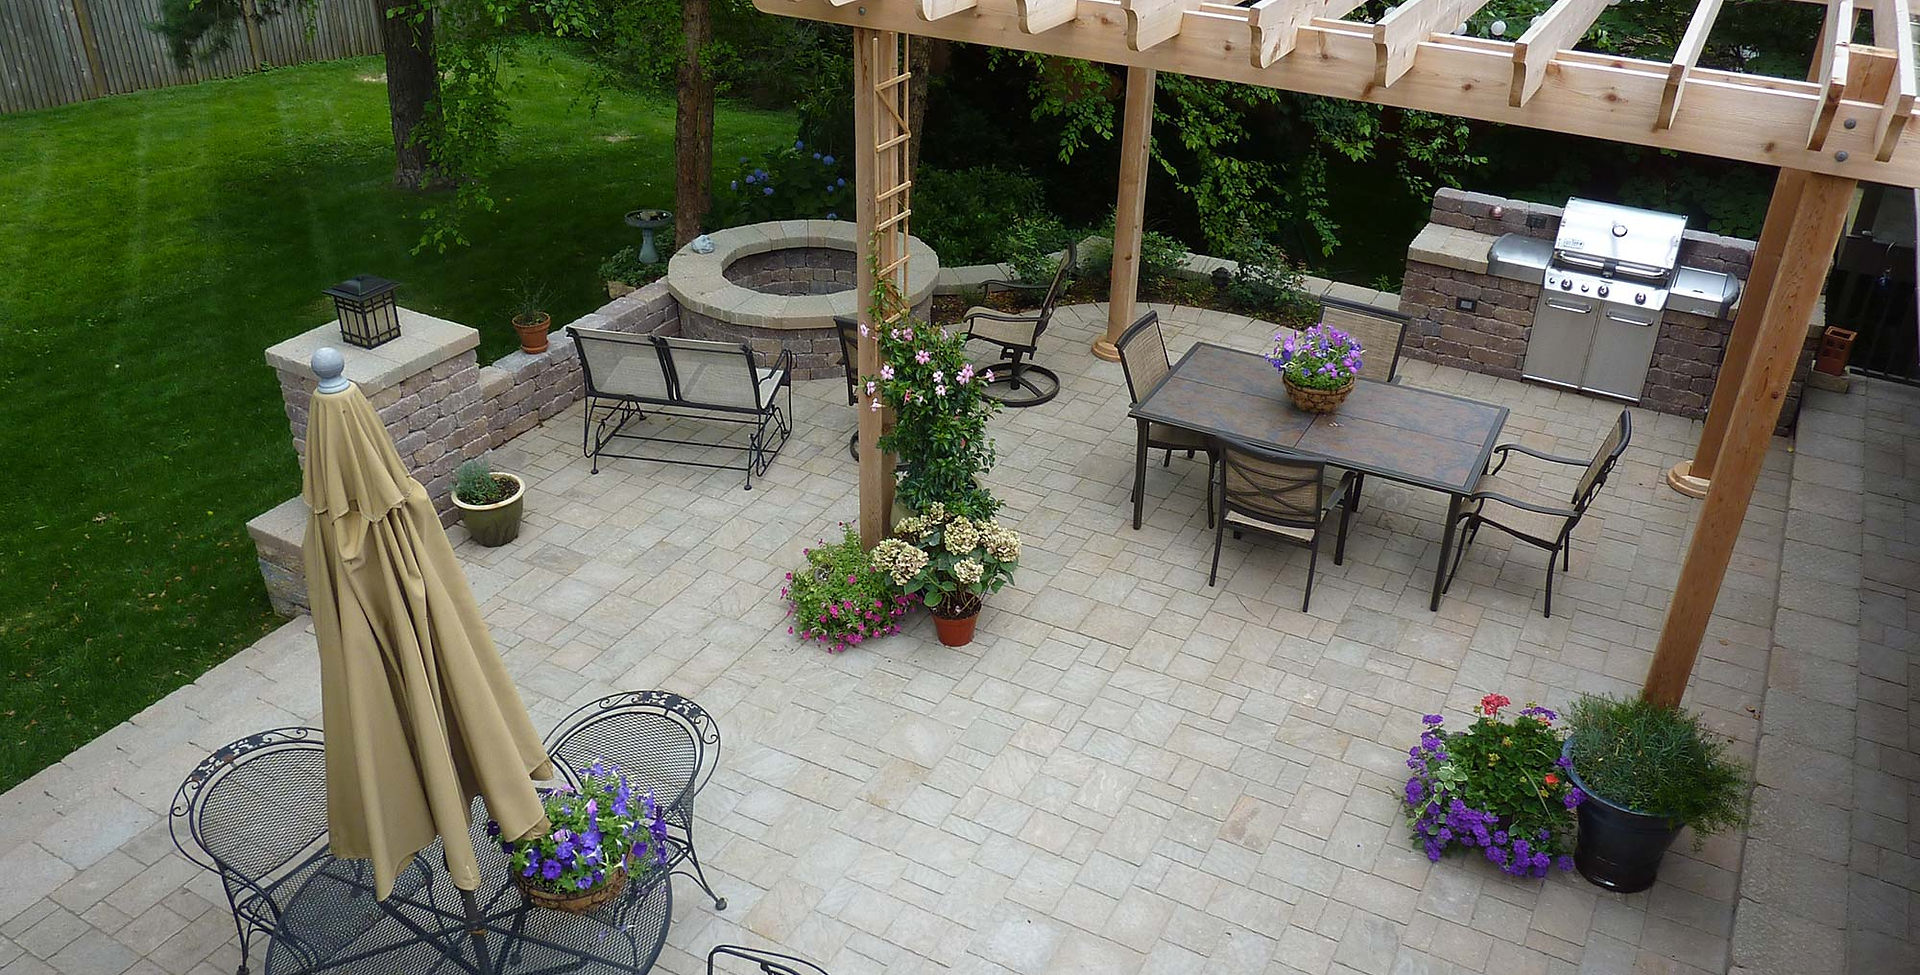 Complete patio makeover design.